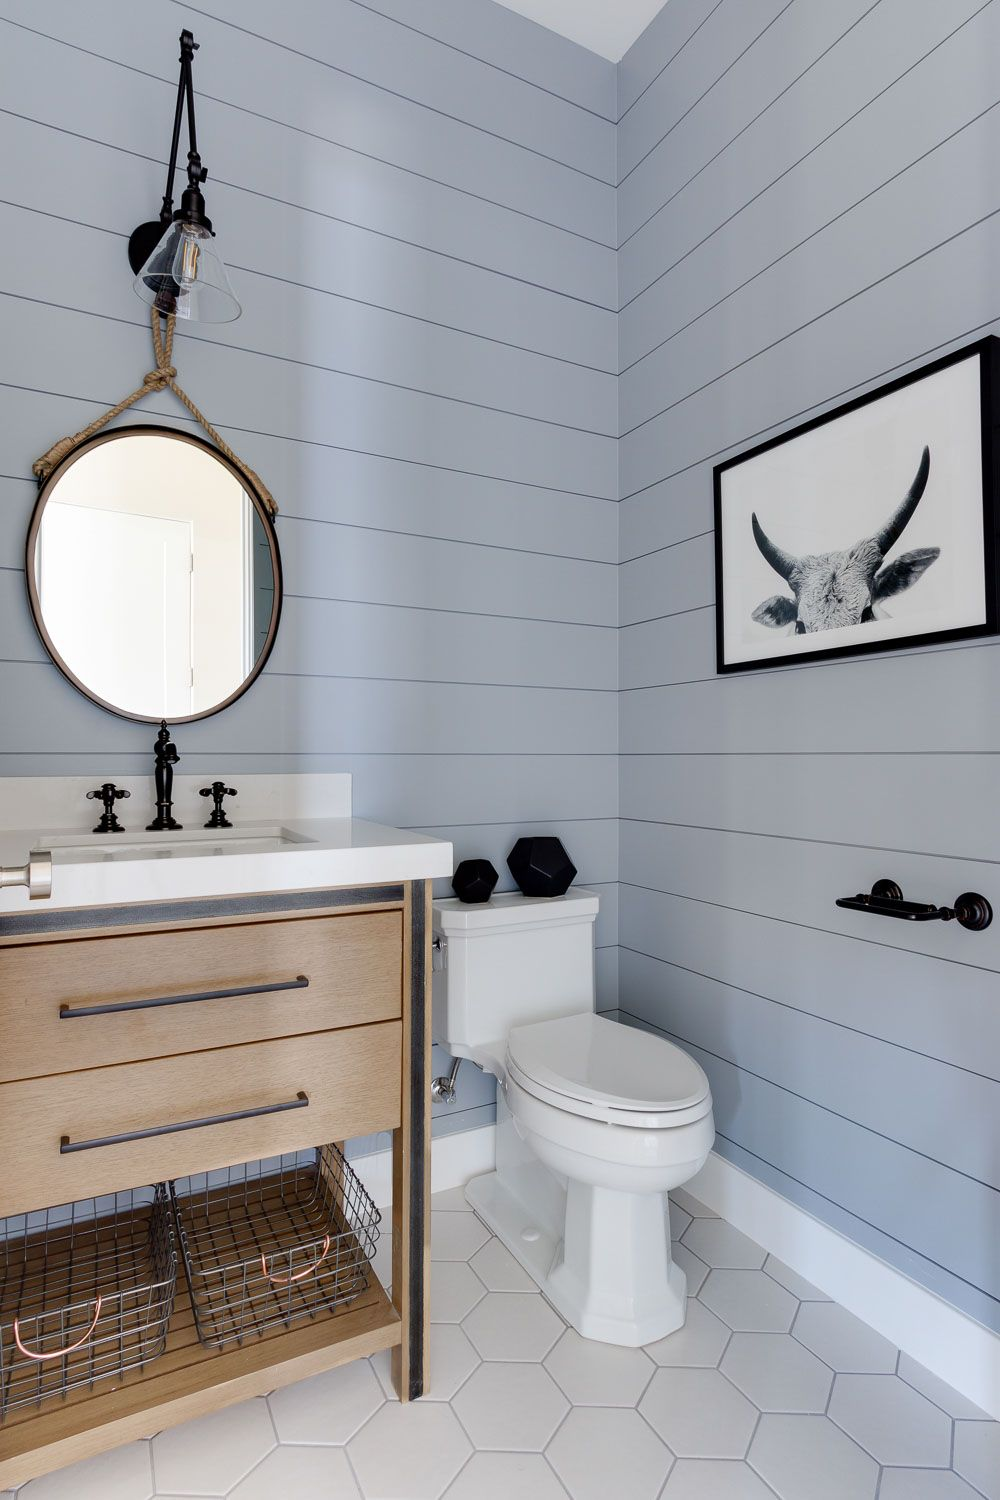 simons design studio designer spotlight bathroom ideas shiplap rh pinterest com